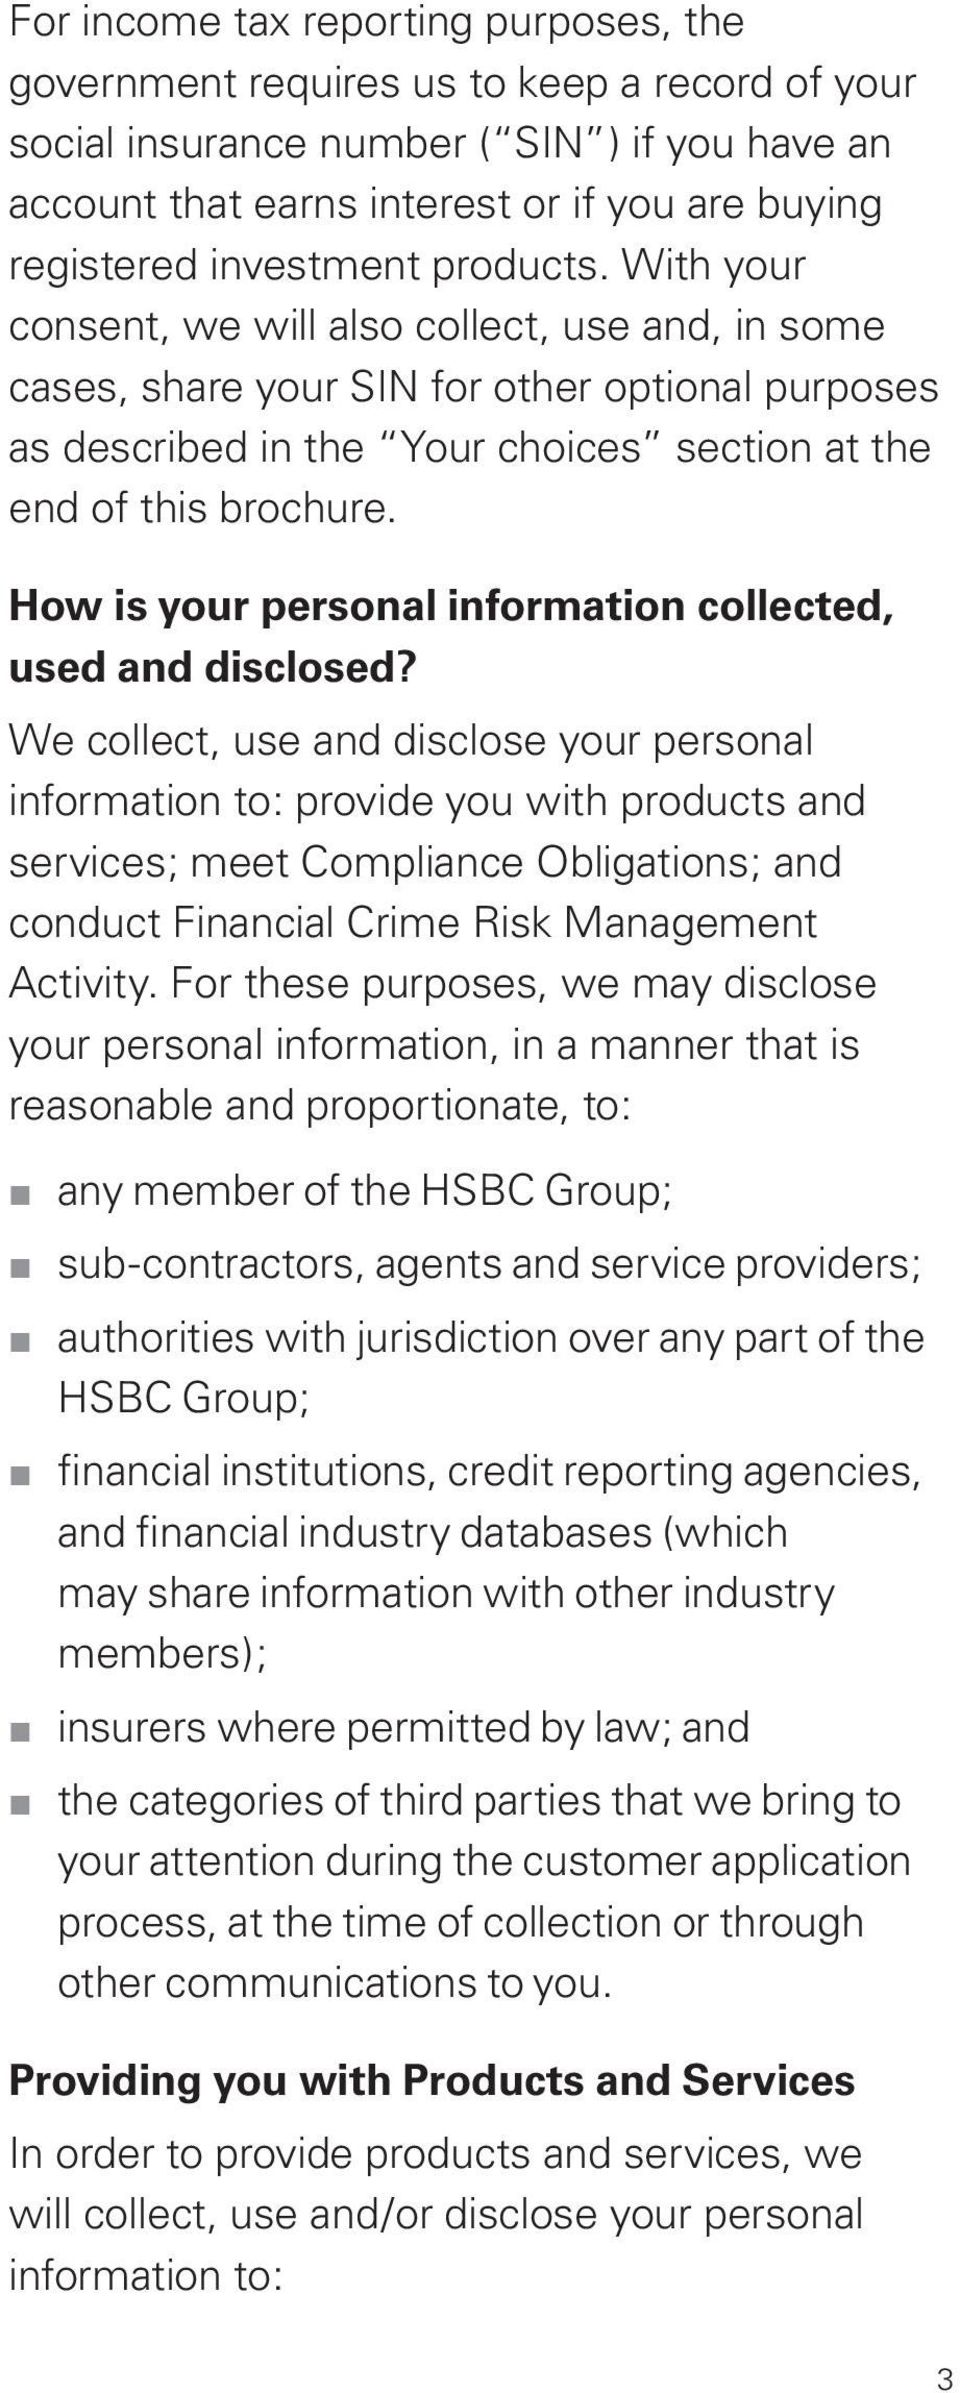 How is your personal information collected, used and disclosed?